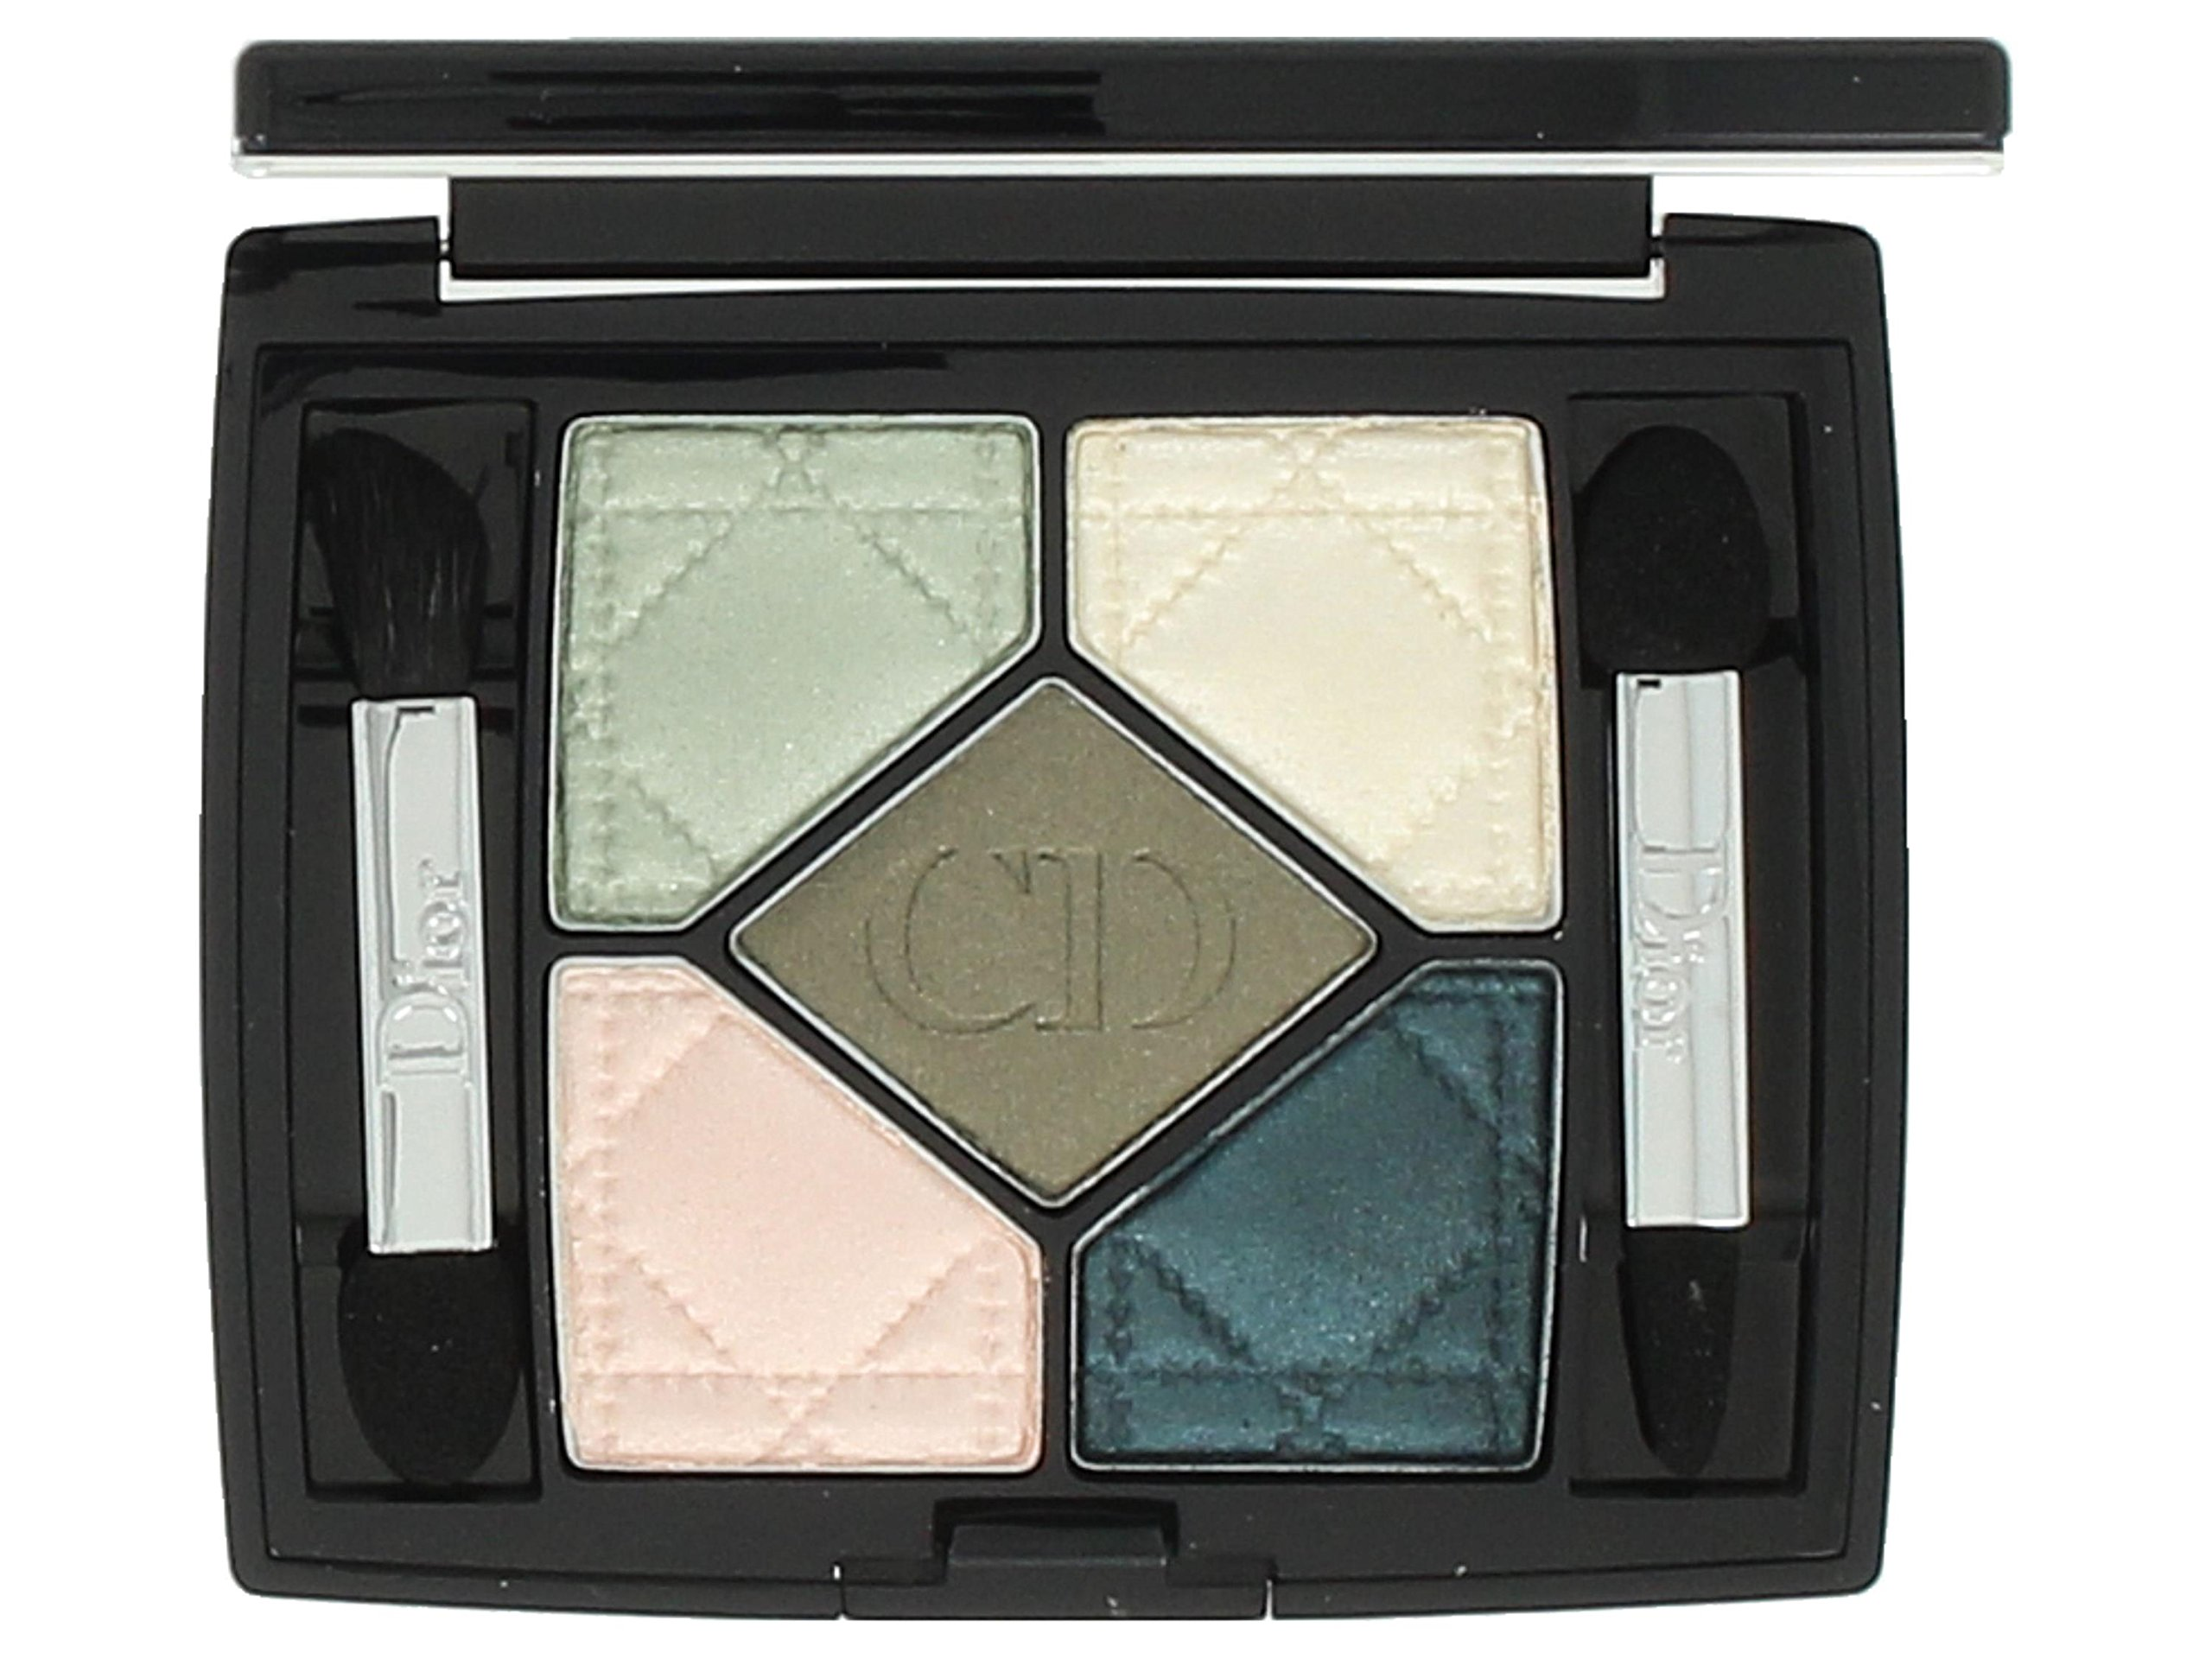 Christian Dior 5 Couleurs Couture Colors and Effects Eye Shadow, Palette No. 456 Jardin, 0.21 Ounce